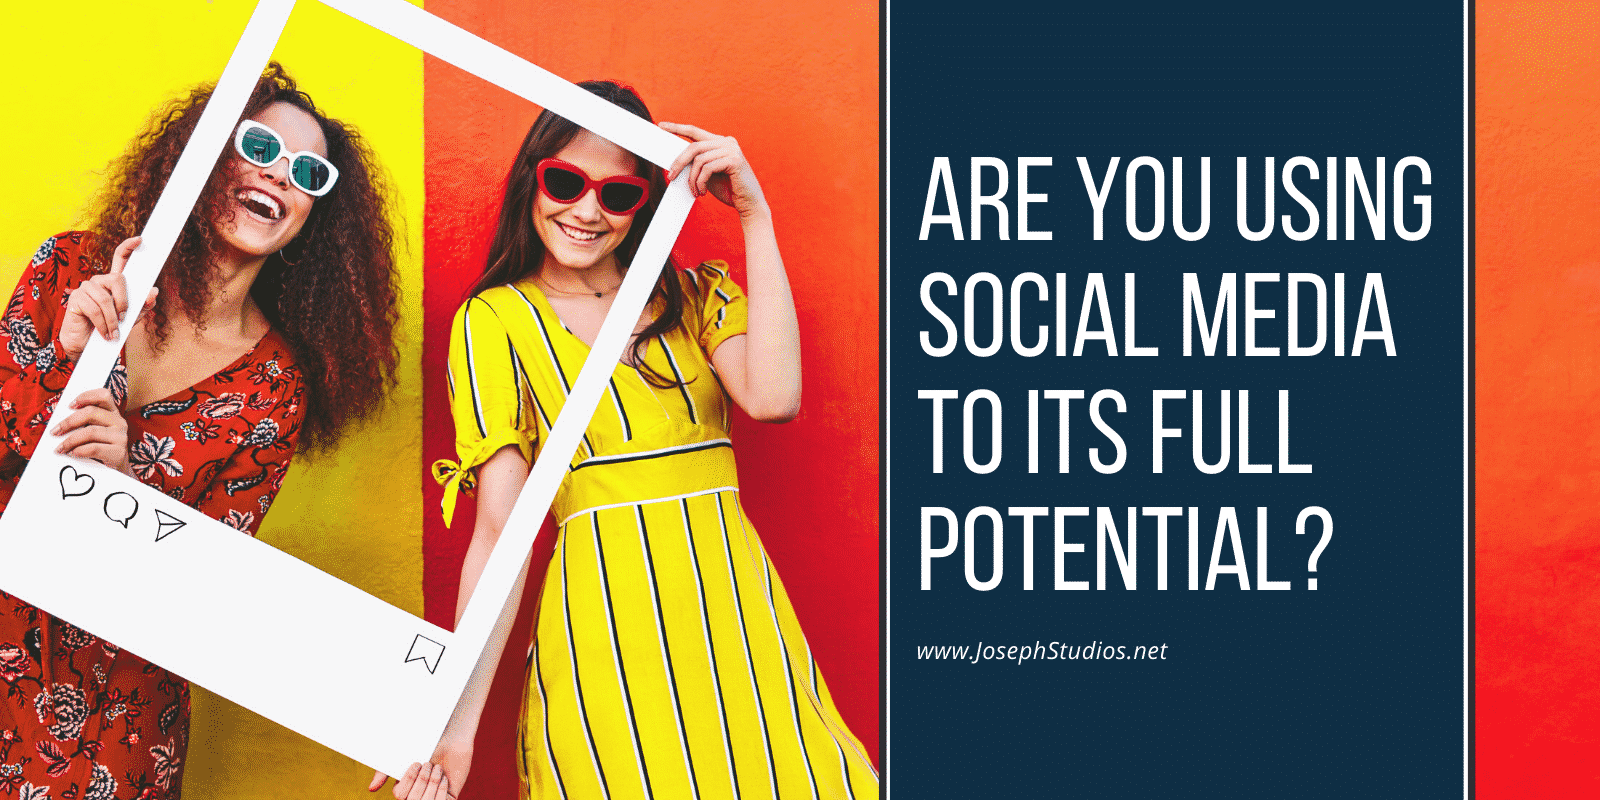 Are You Using Social Media To Its Full Potential?, Are You Using Social Media To Its Full Potential?